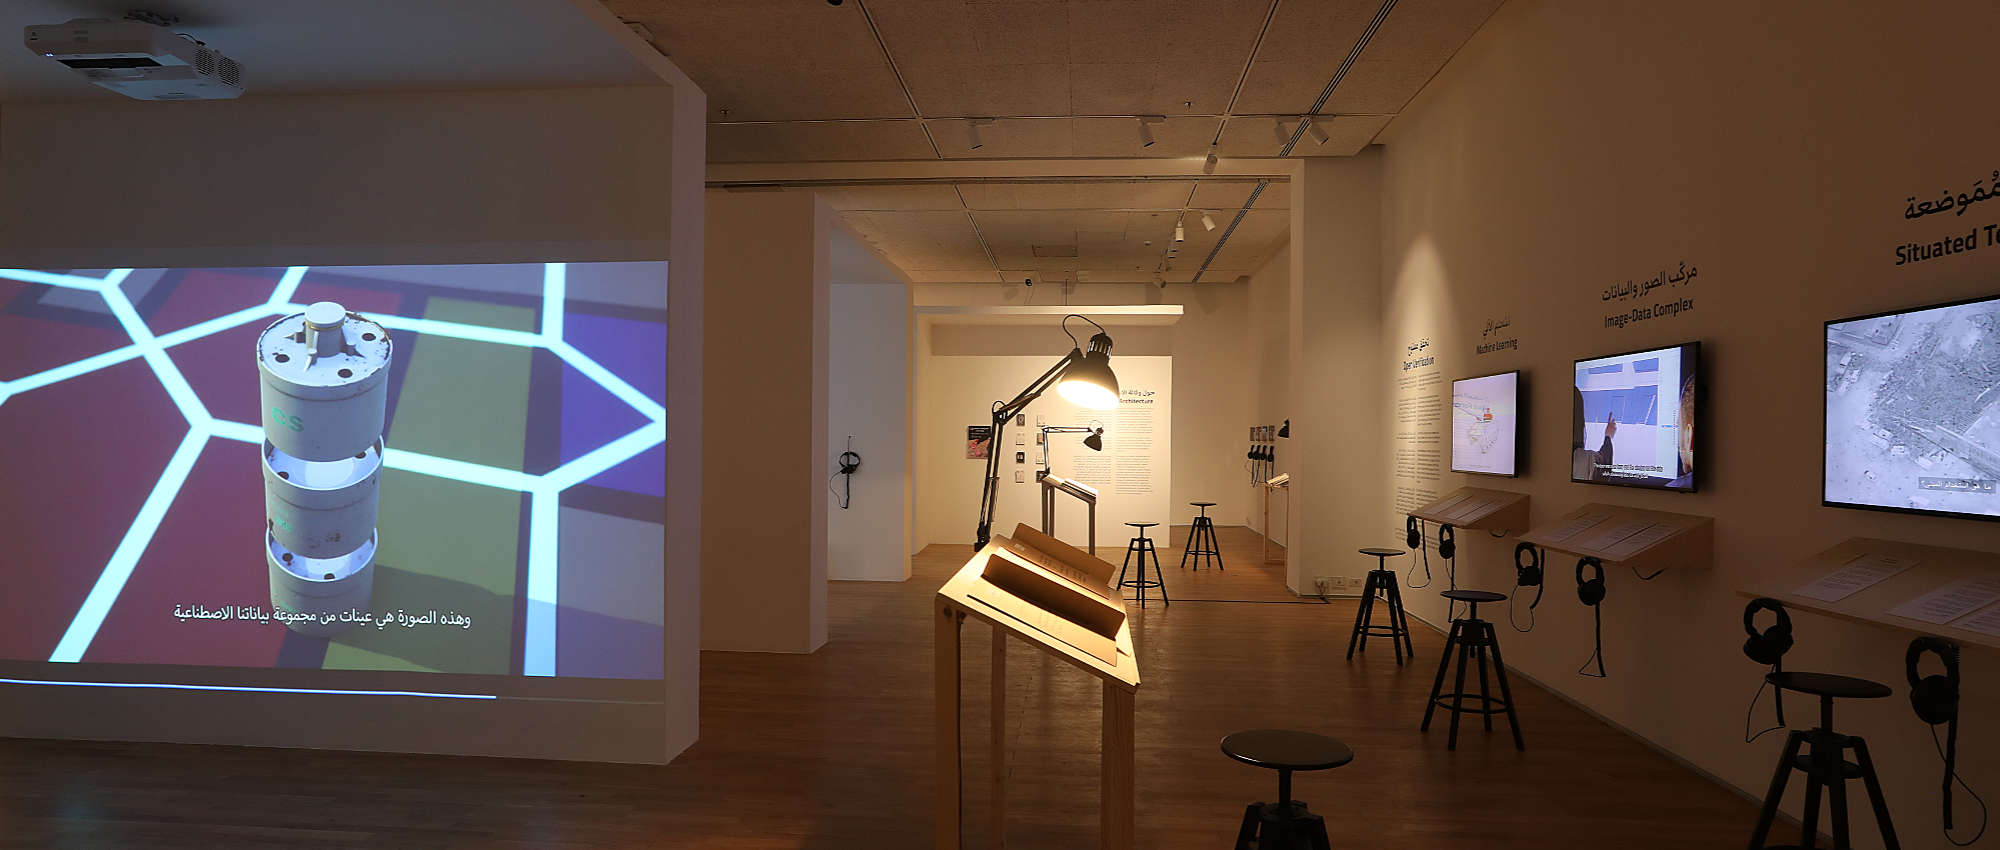 Forensic Architecture - Assembled Practices. © Photo: Courtesy of A.M. Qattan Foundation